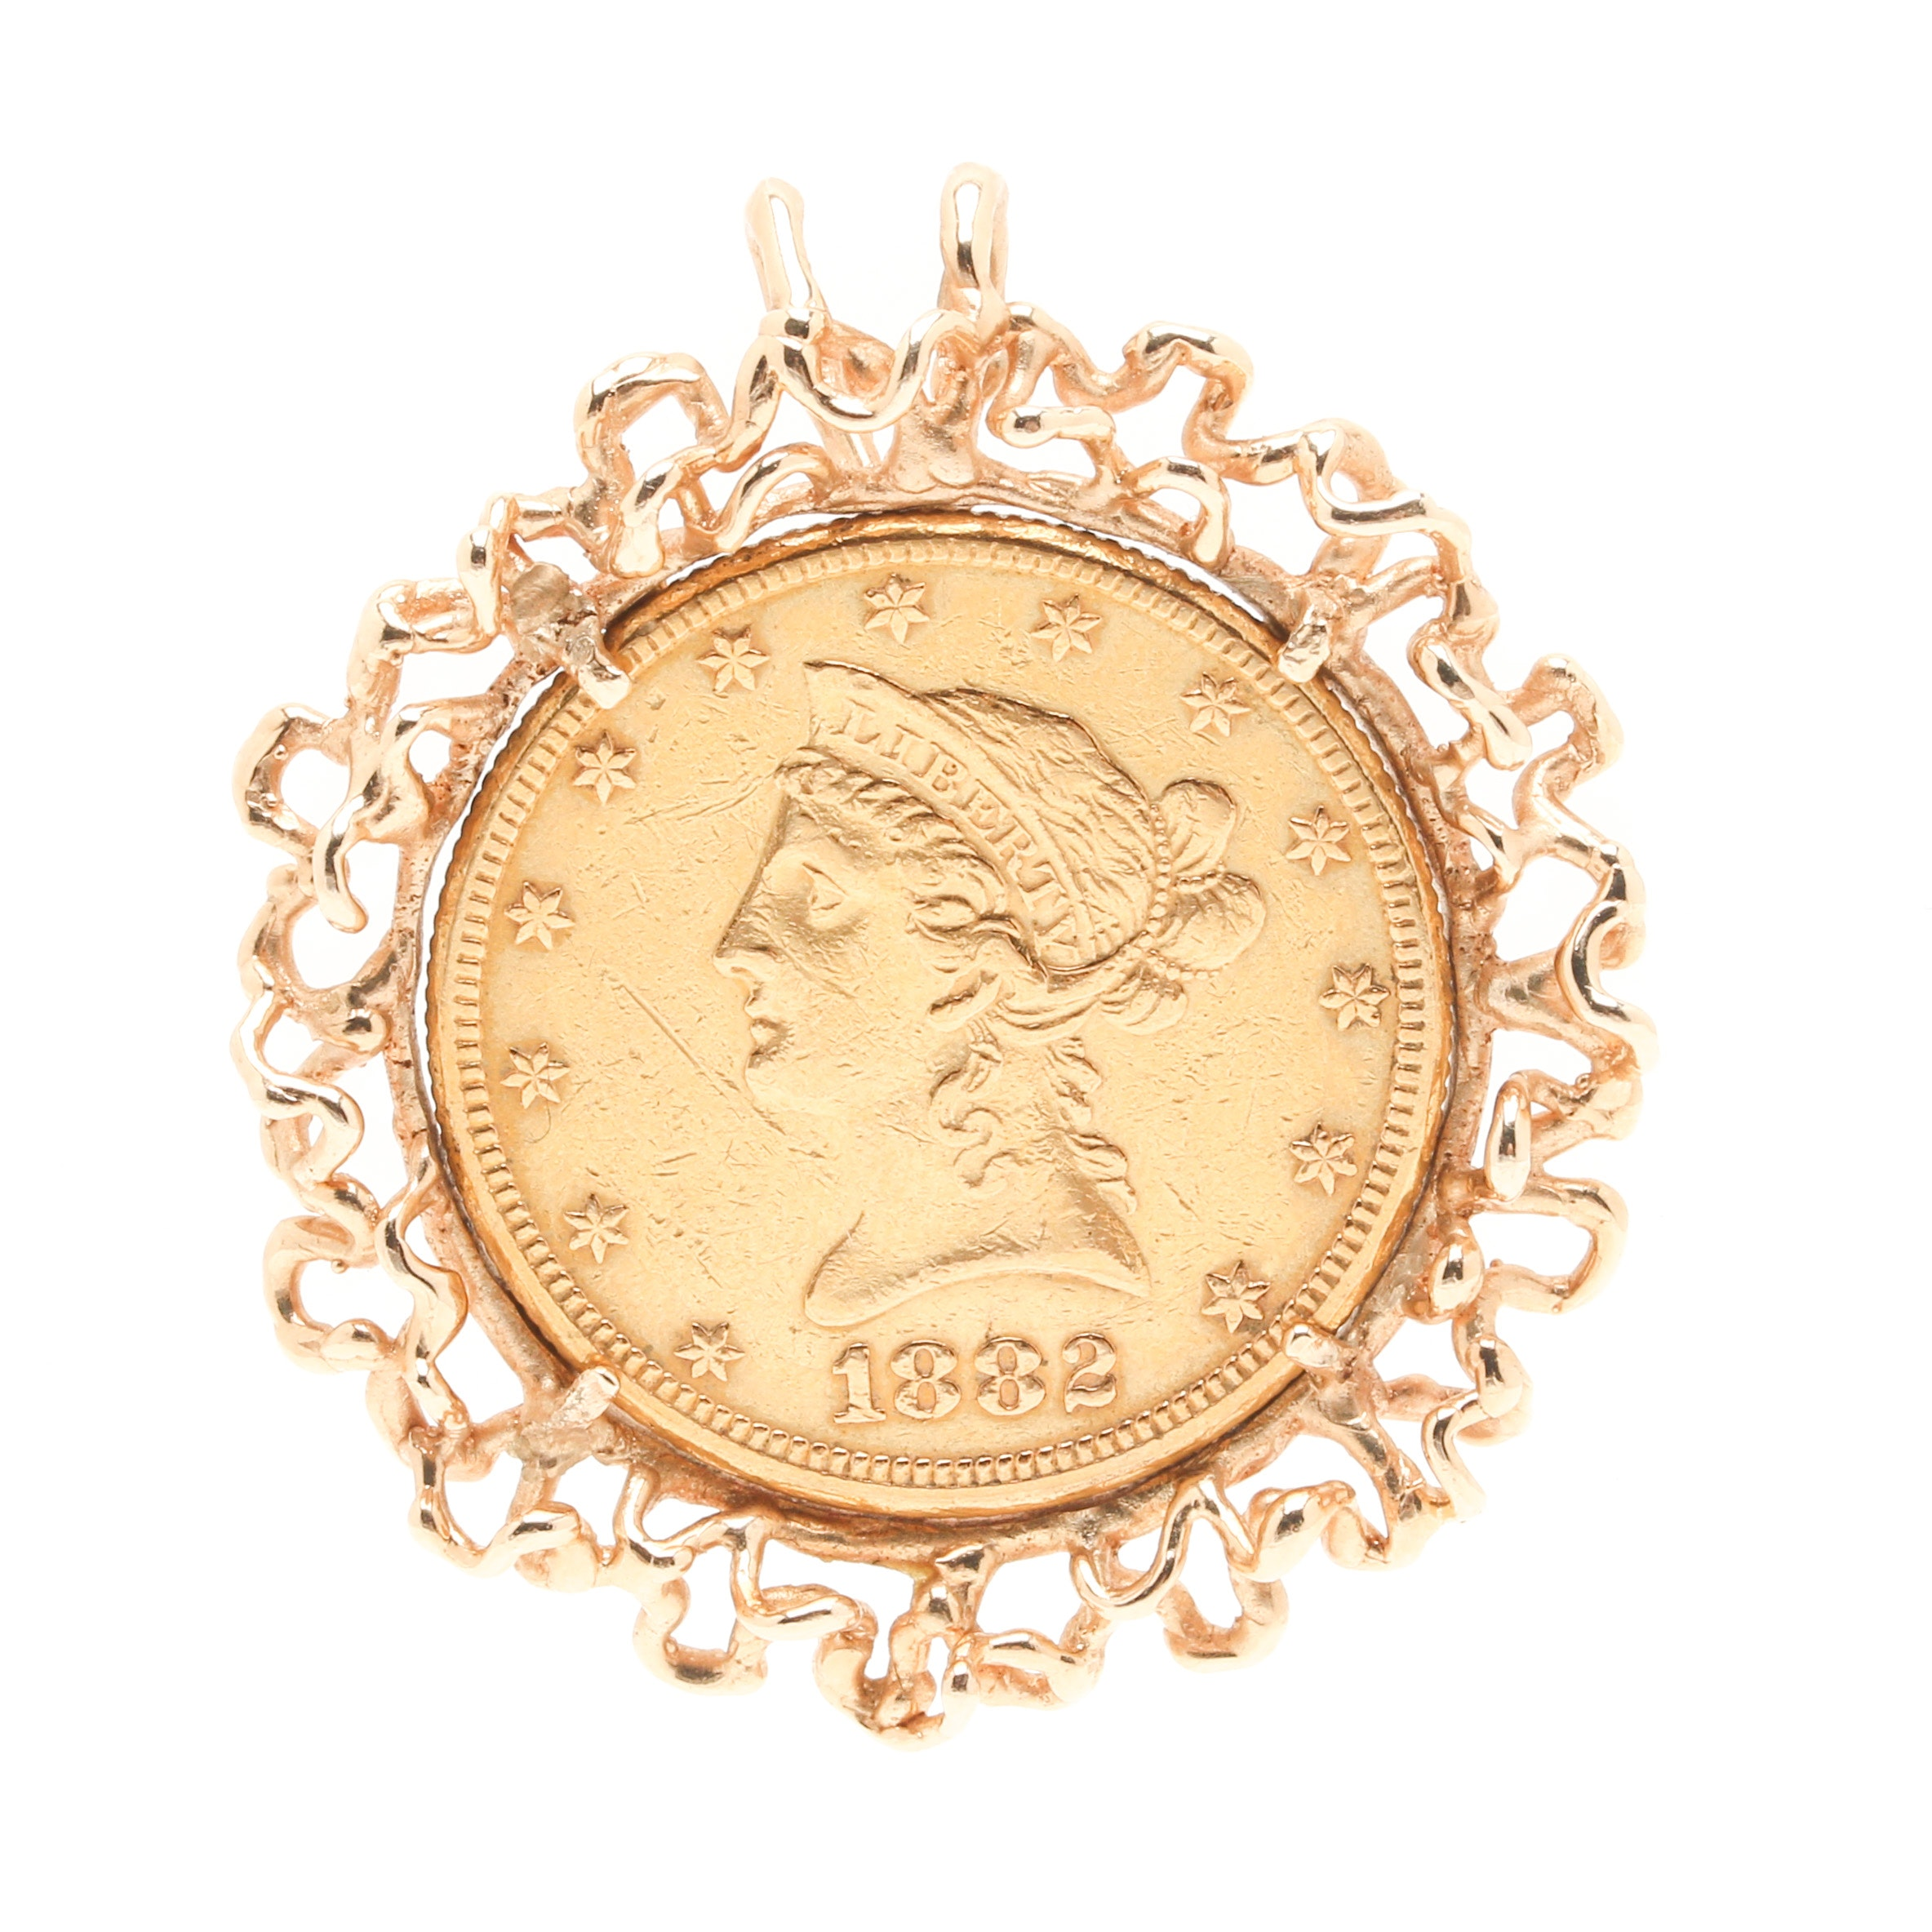 Christian Gobrecht 1882 $10 Liberty Head 22K and 14K Yellow Gold Coin Pendant